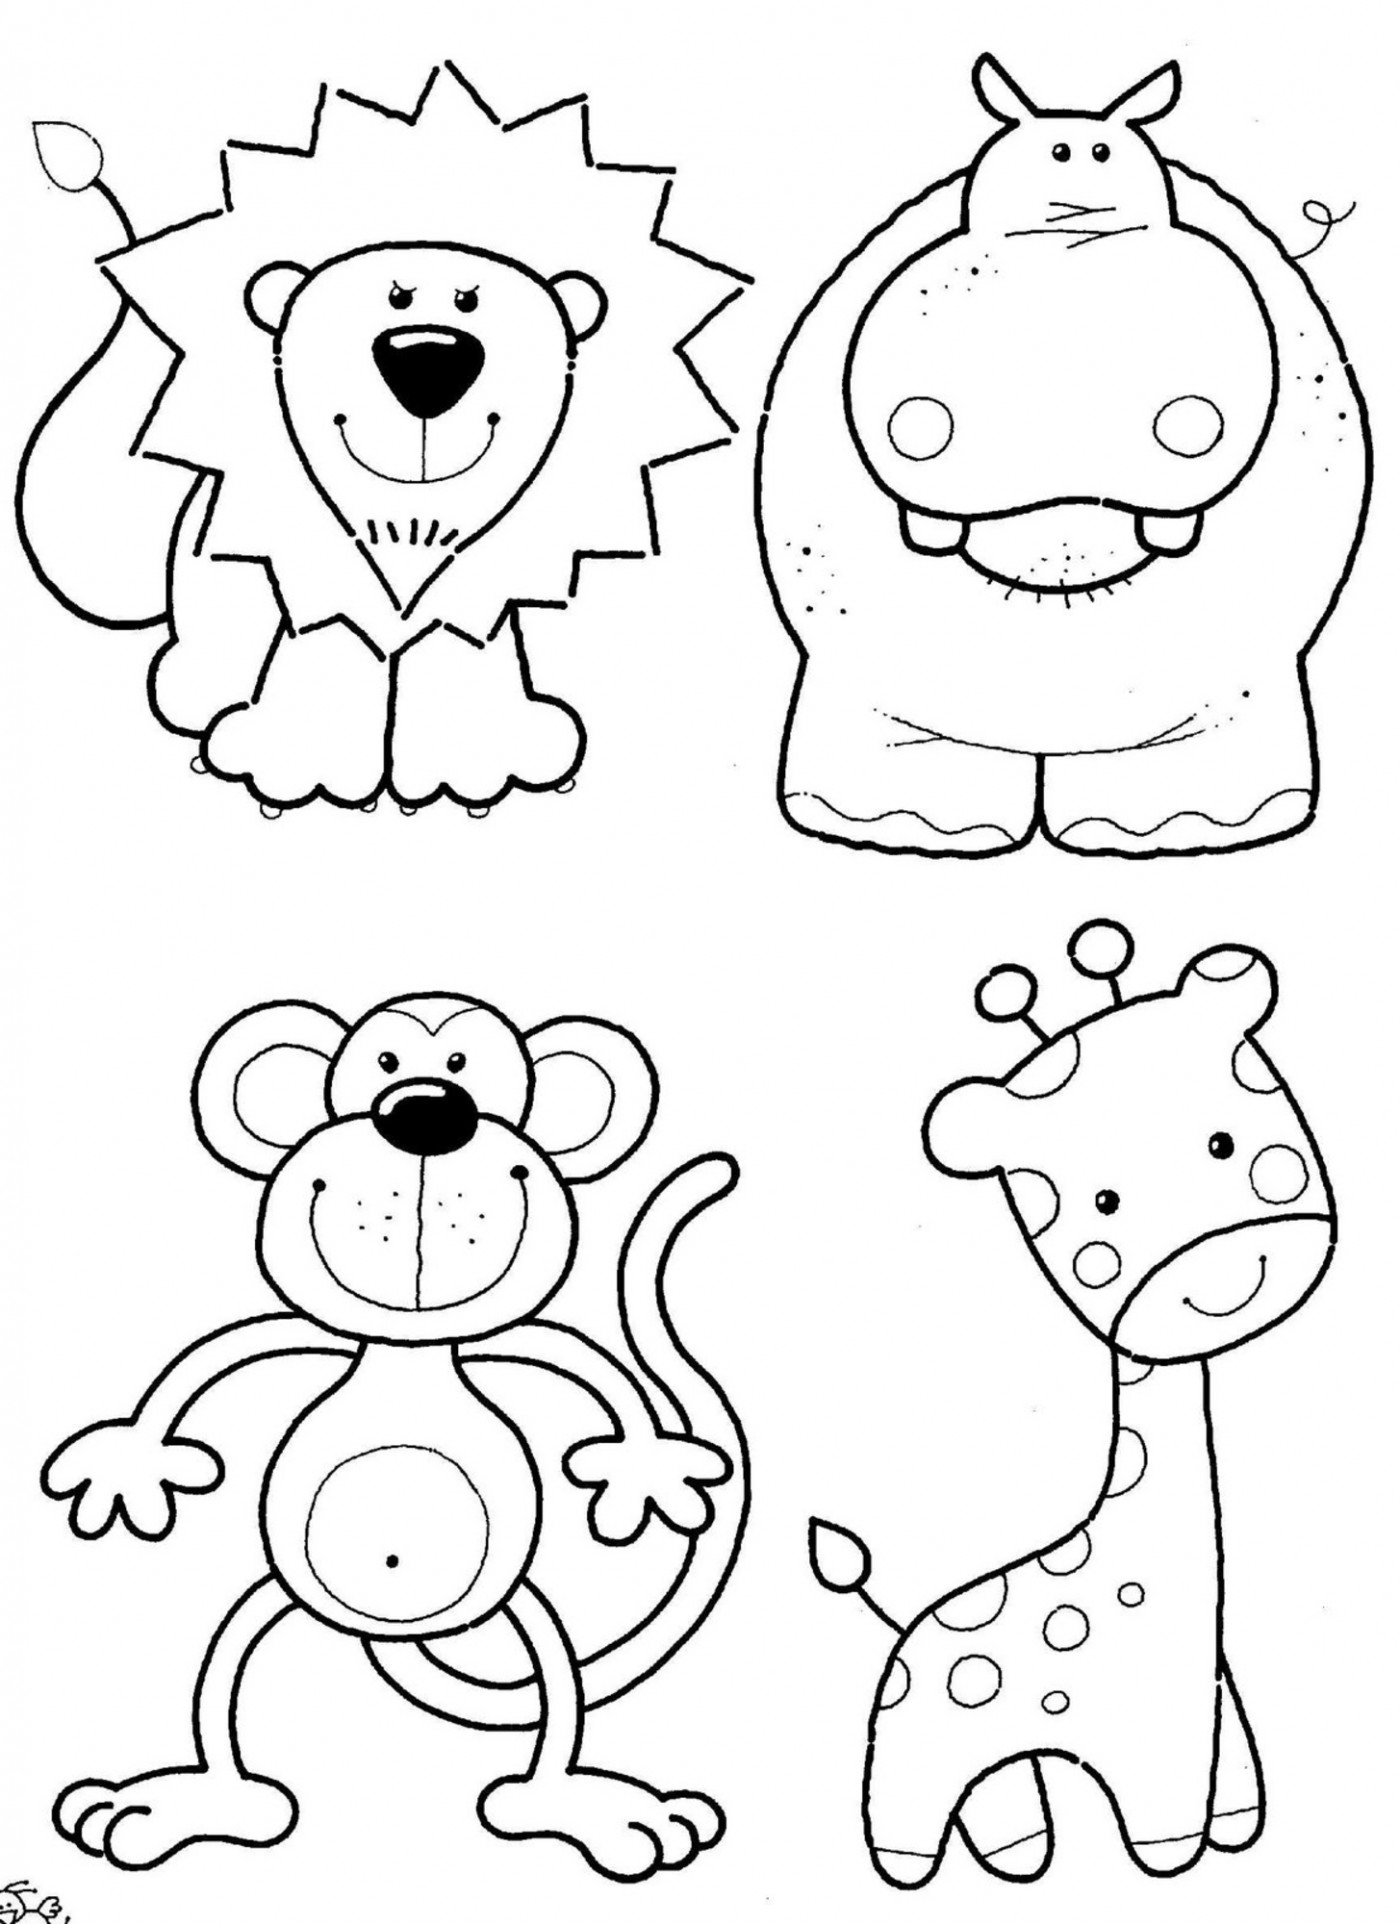 free printable coloring pictures free printable nightmare before christmas coloring pages printable free coloring pictures